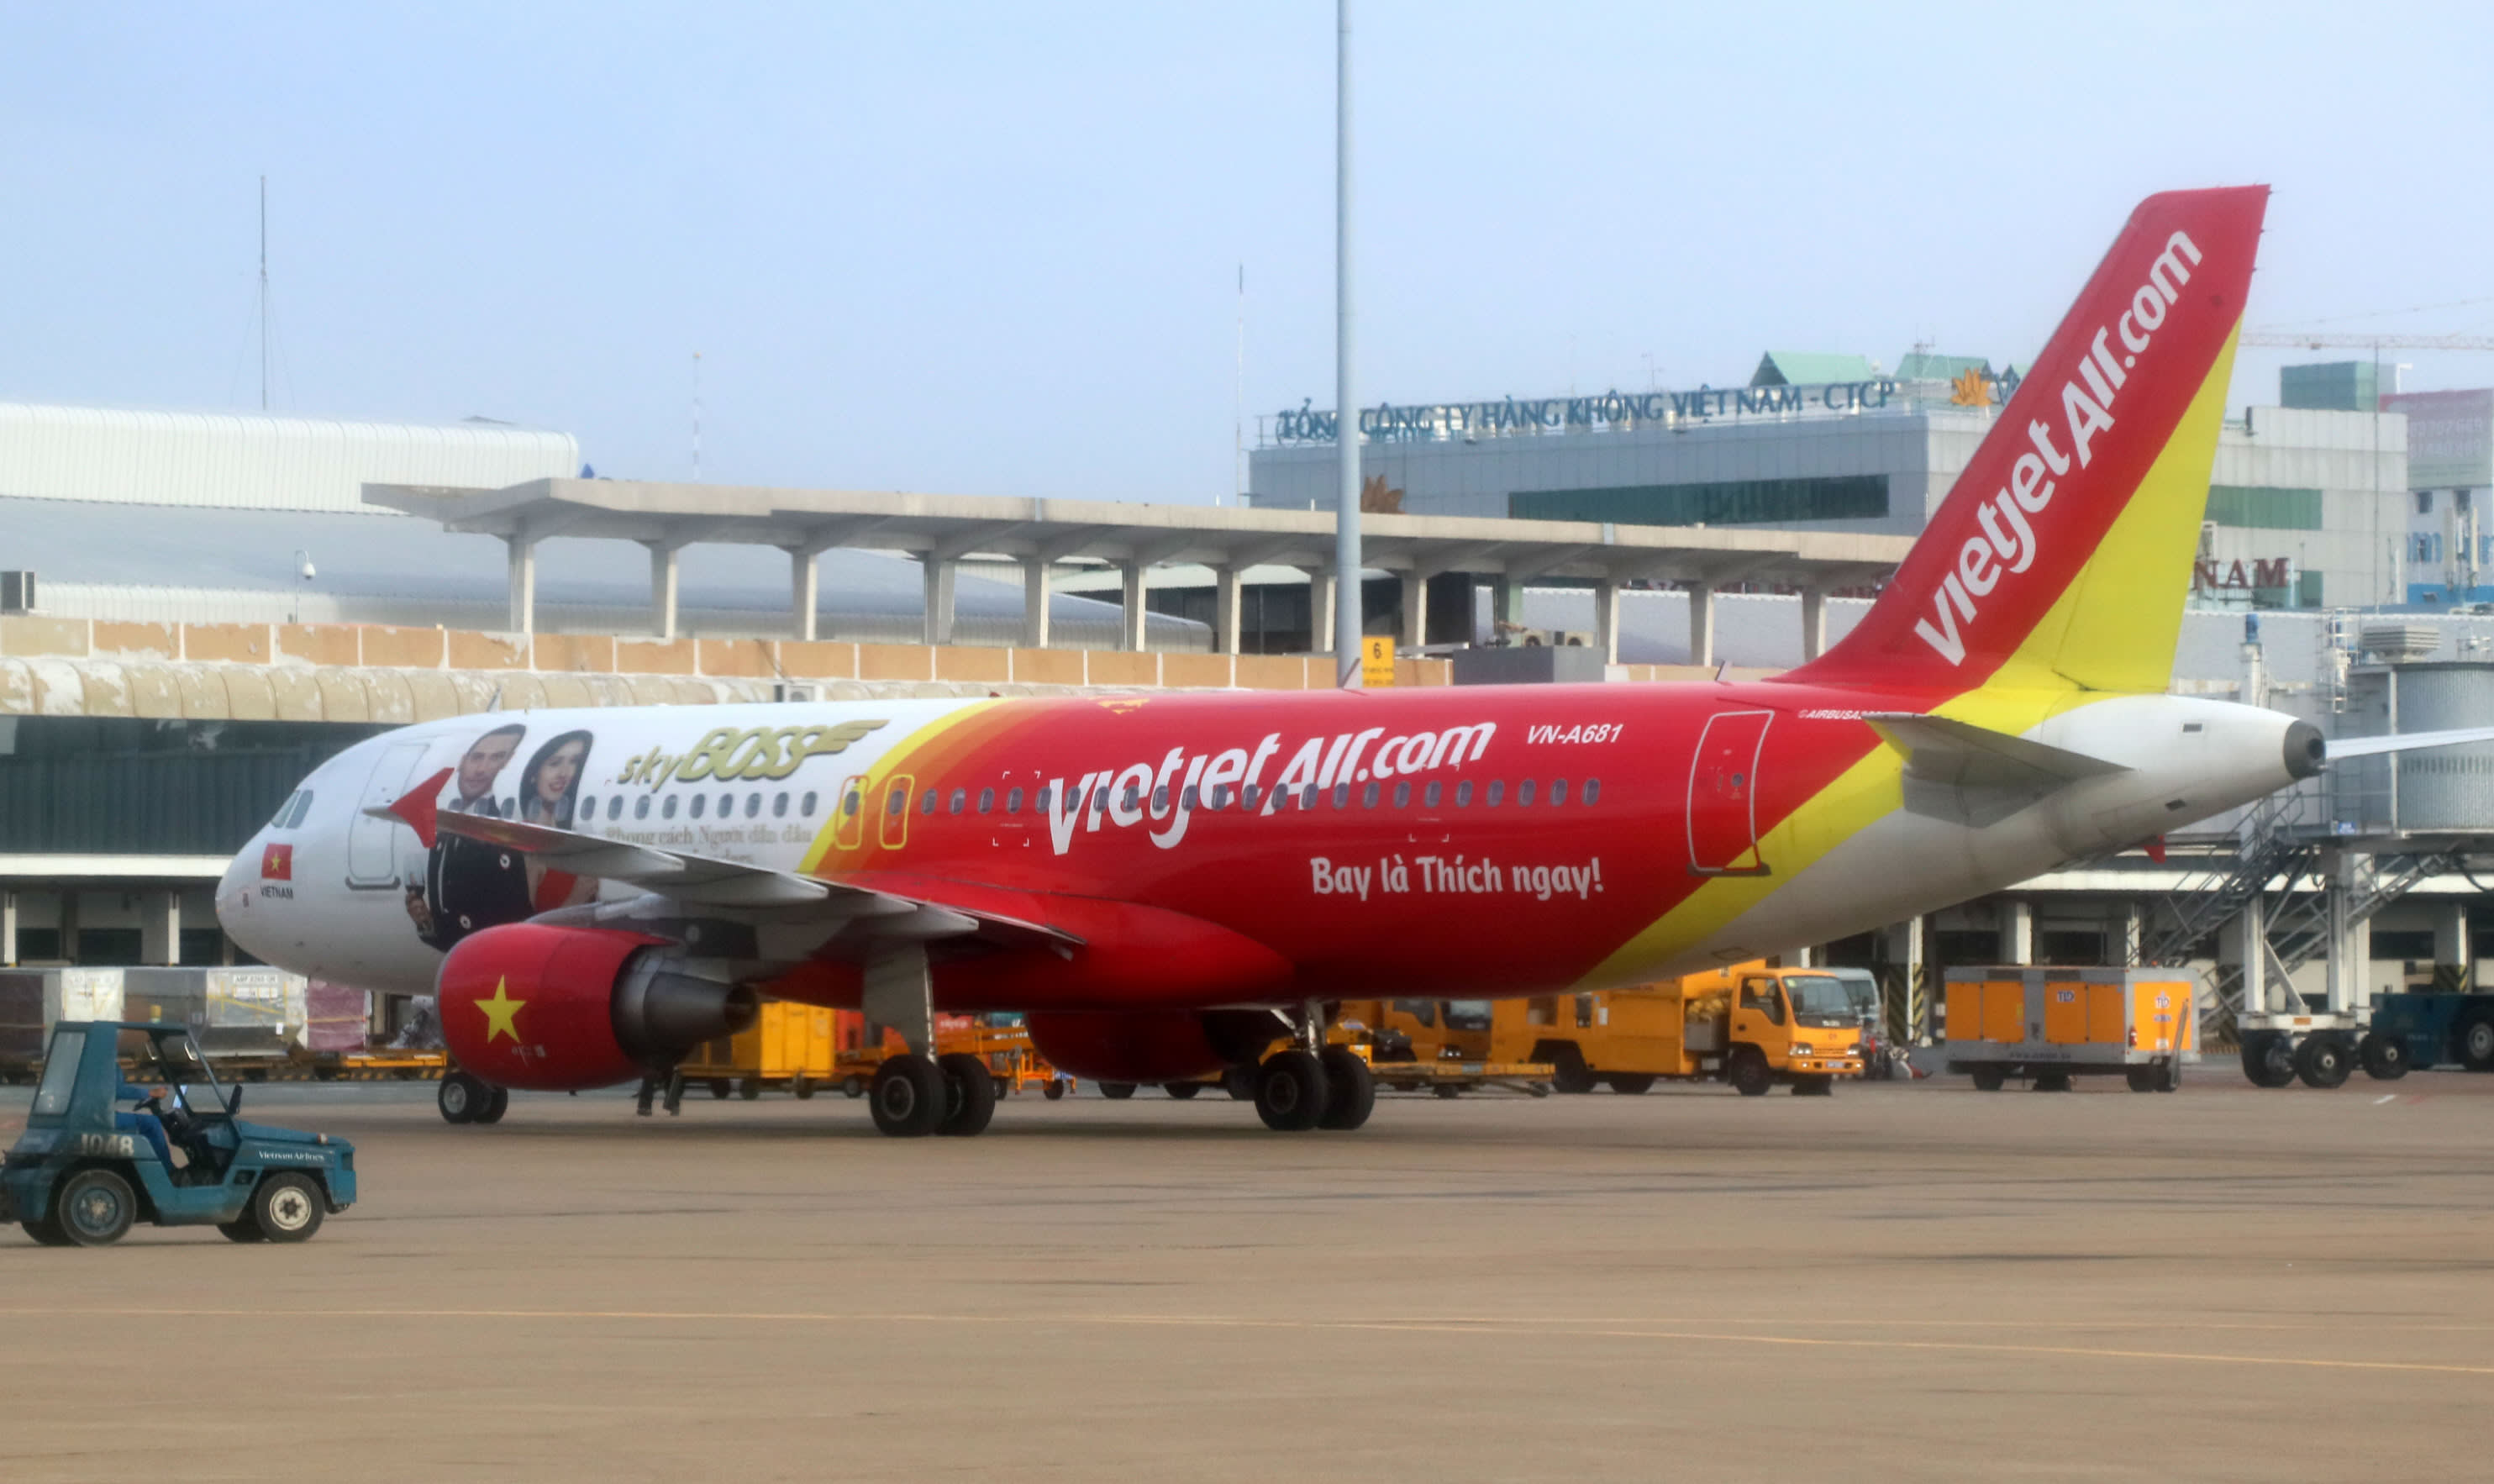 Southeast Asian airlines open new regional routes to Japan - Nikkei ...